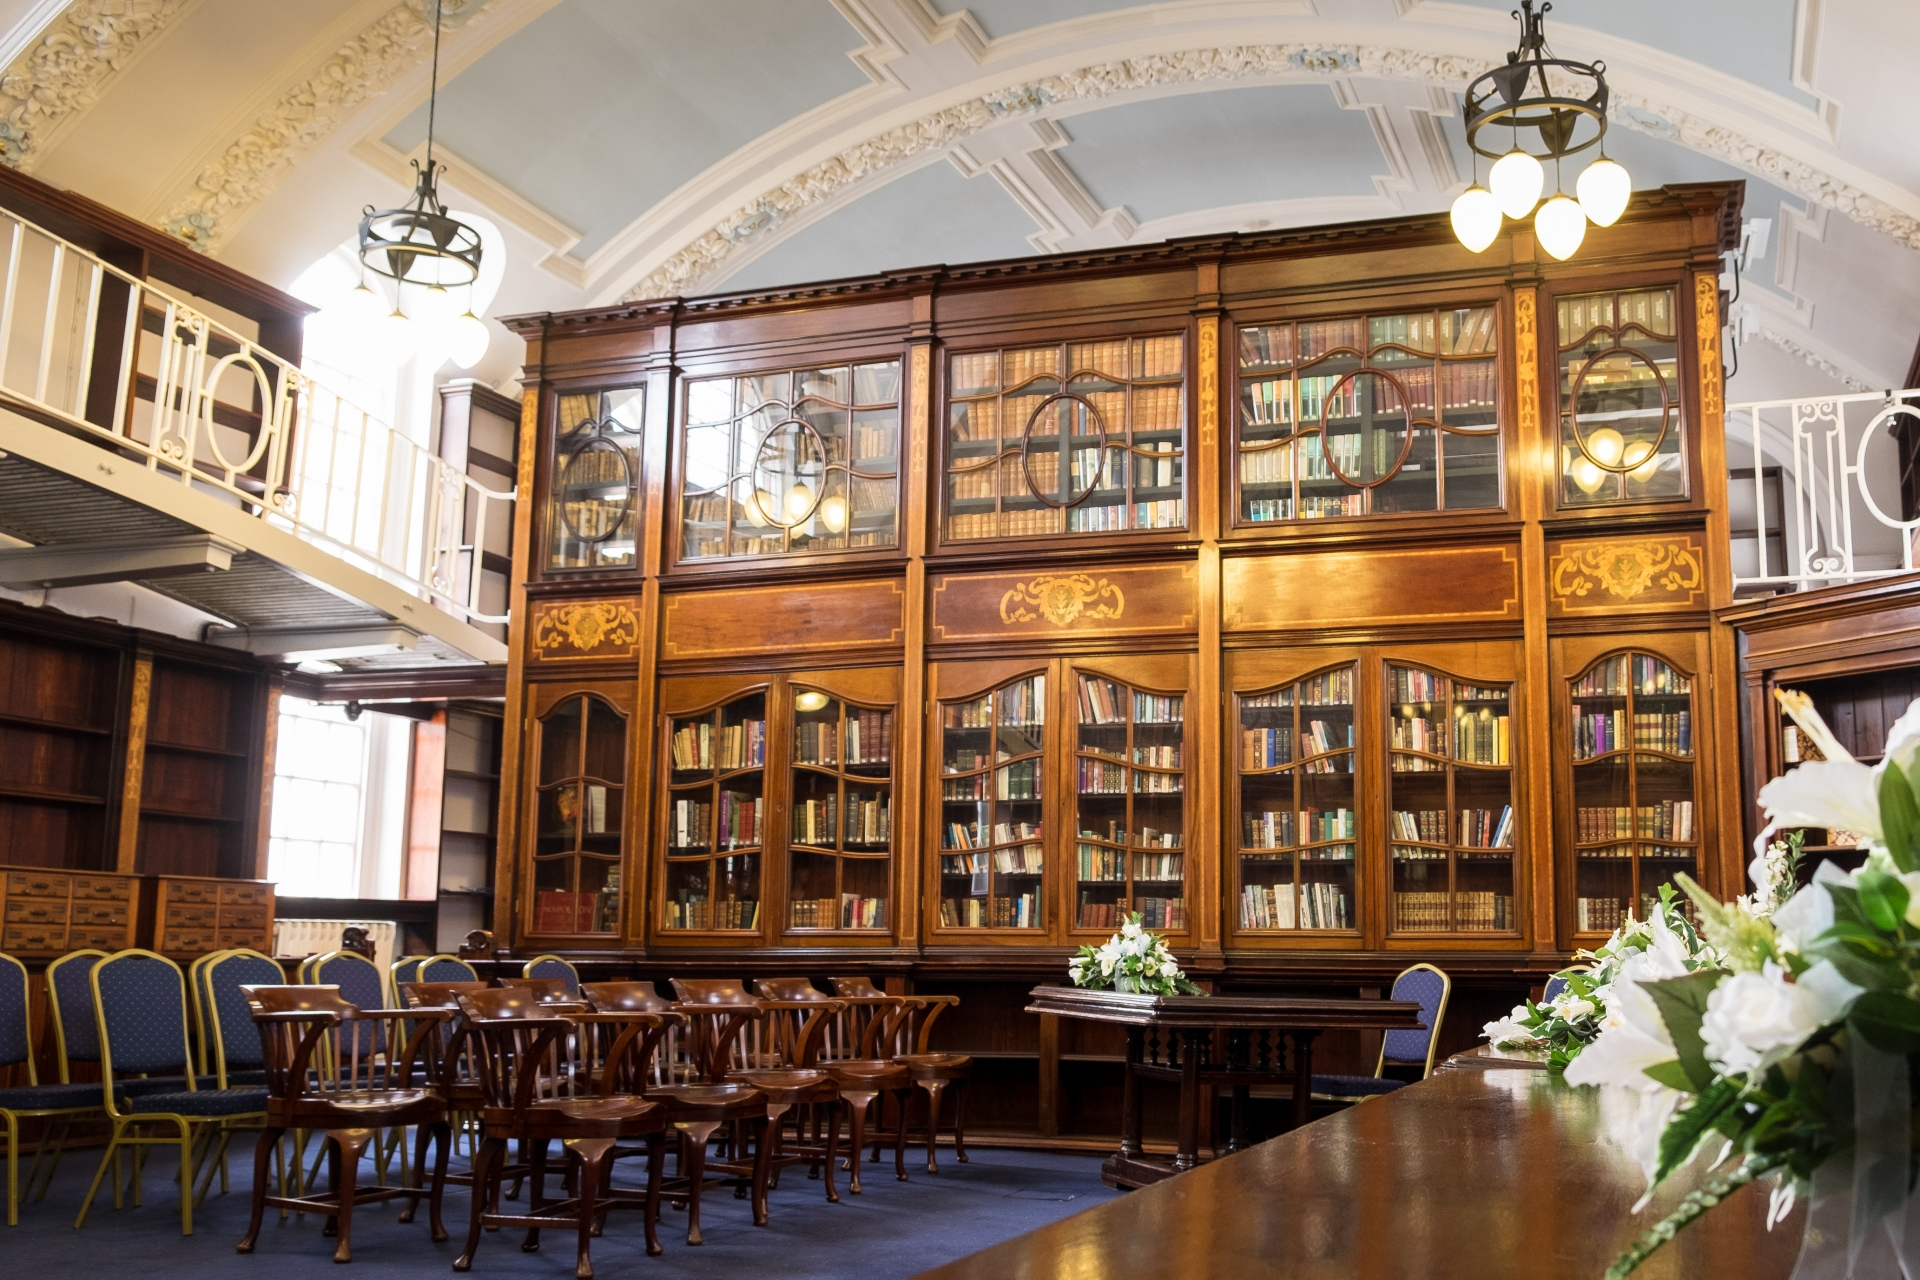 LoveReading Library of the Month #4: Hull Central Library